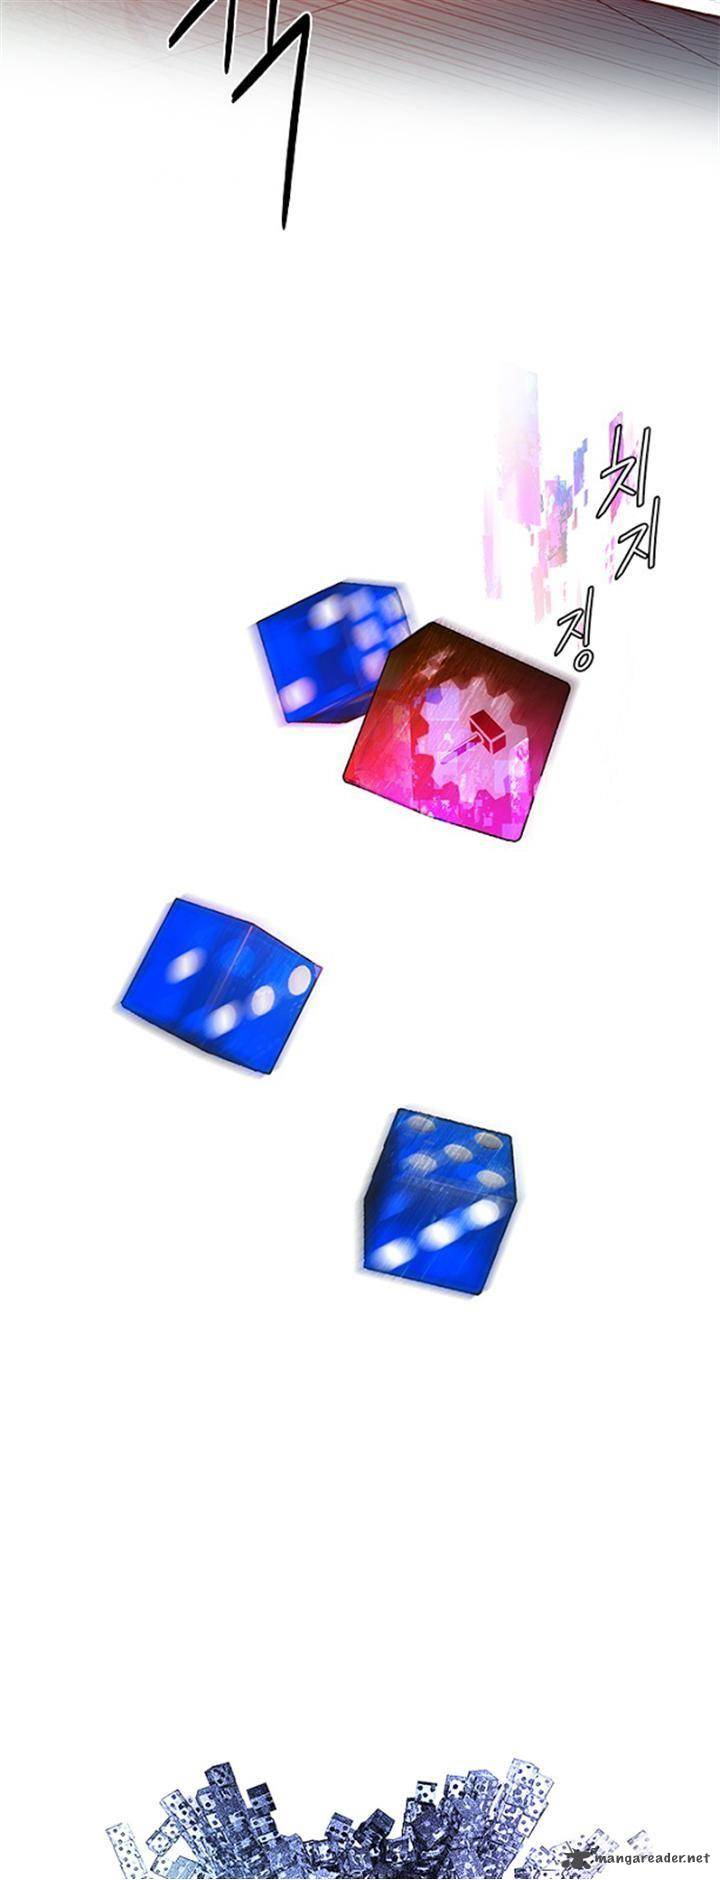 dice_the_cube_that_changes_everything_98_32